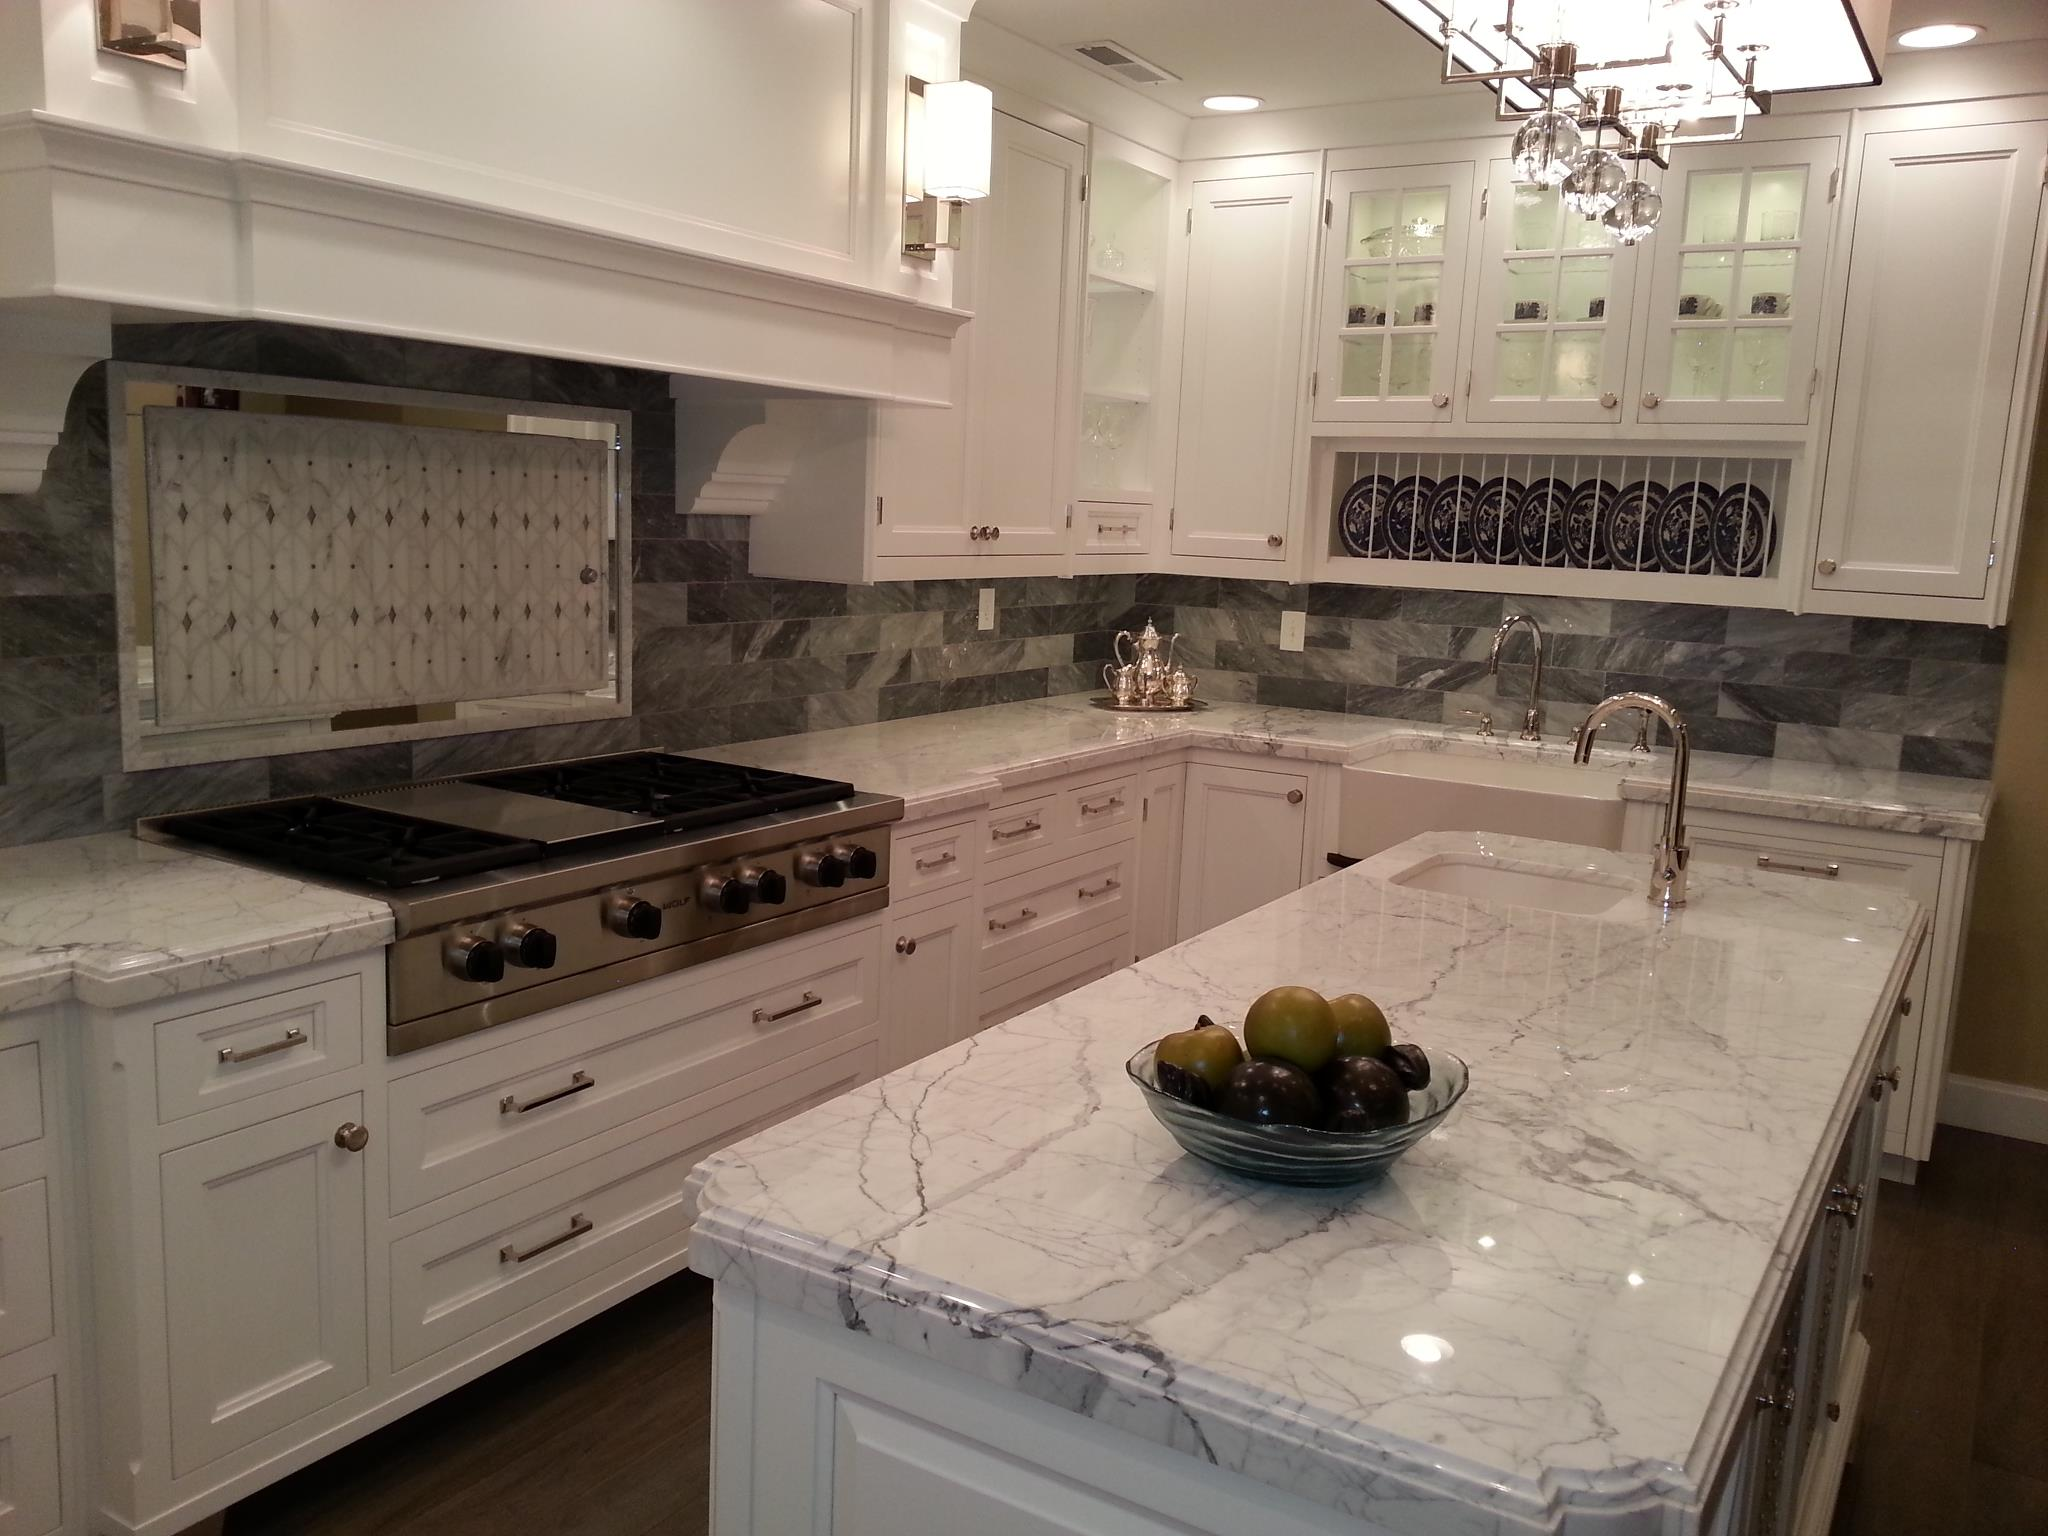 Different Countertop Surfaces Luxury Kitchens How To Hide Seams In Natural Stone